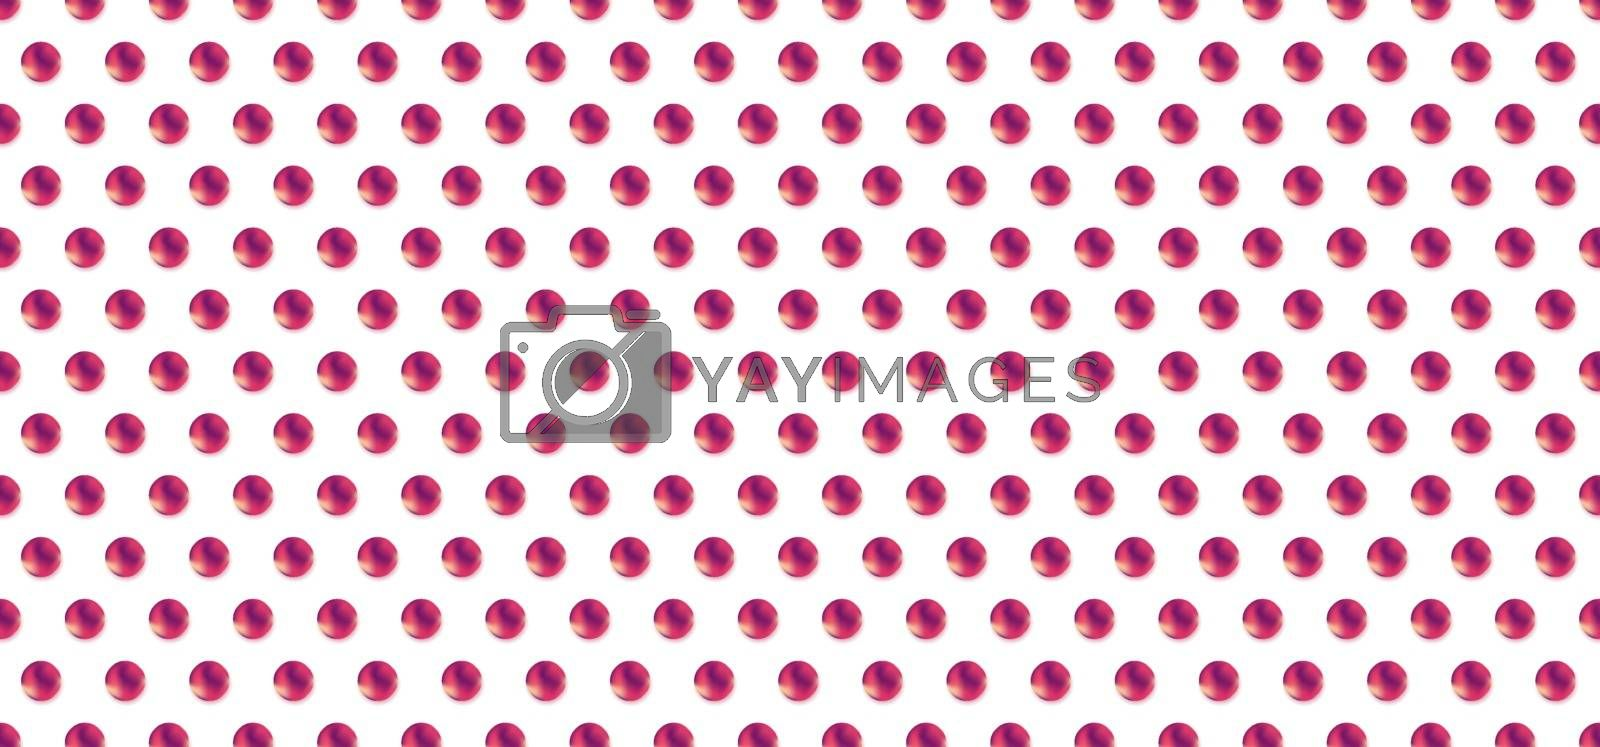 Circles pink and purple gradient shape pattern on white background. 3D circle repeating seamless. Vector illustration